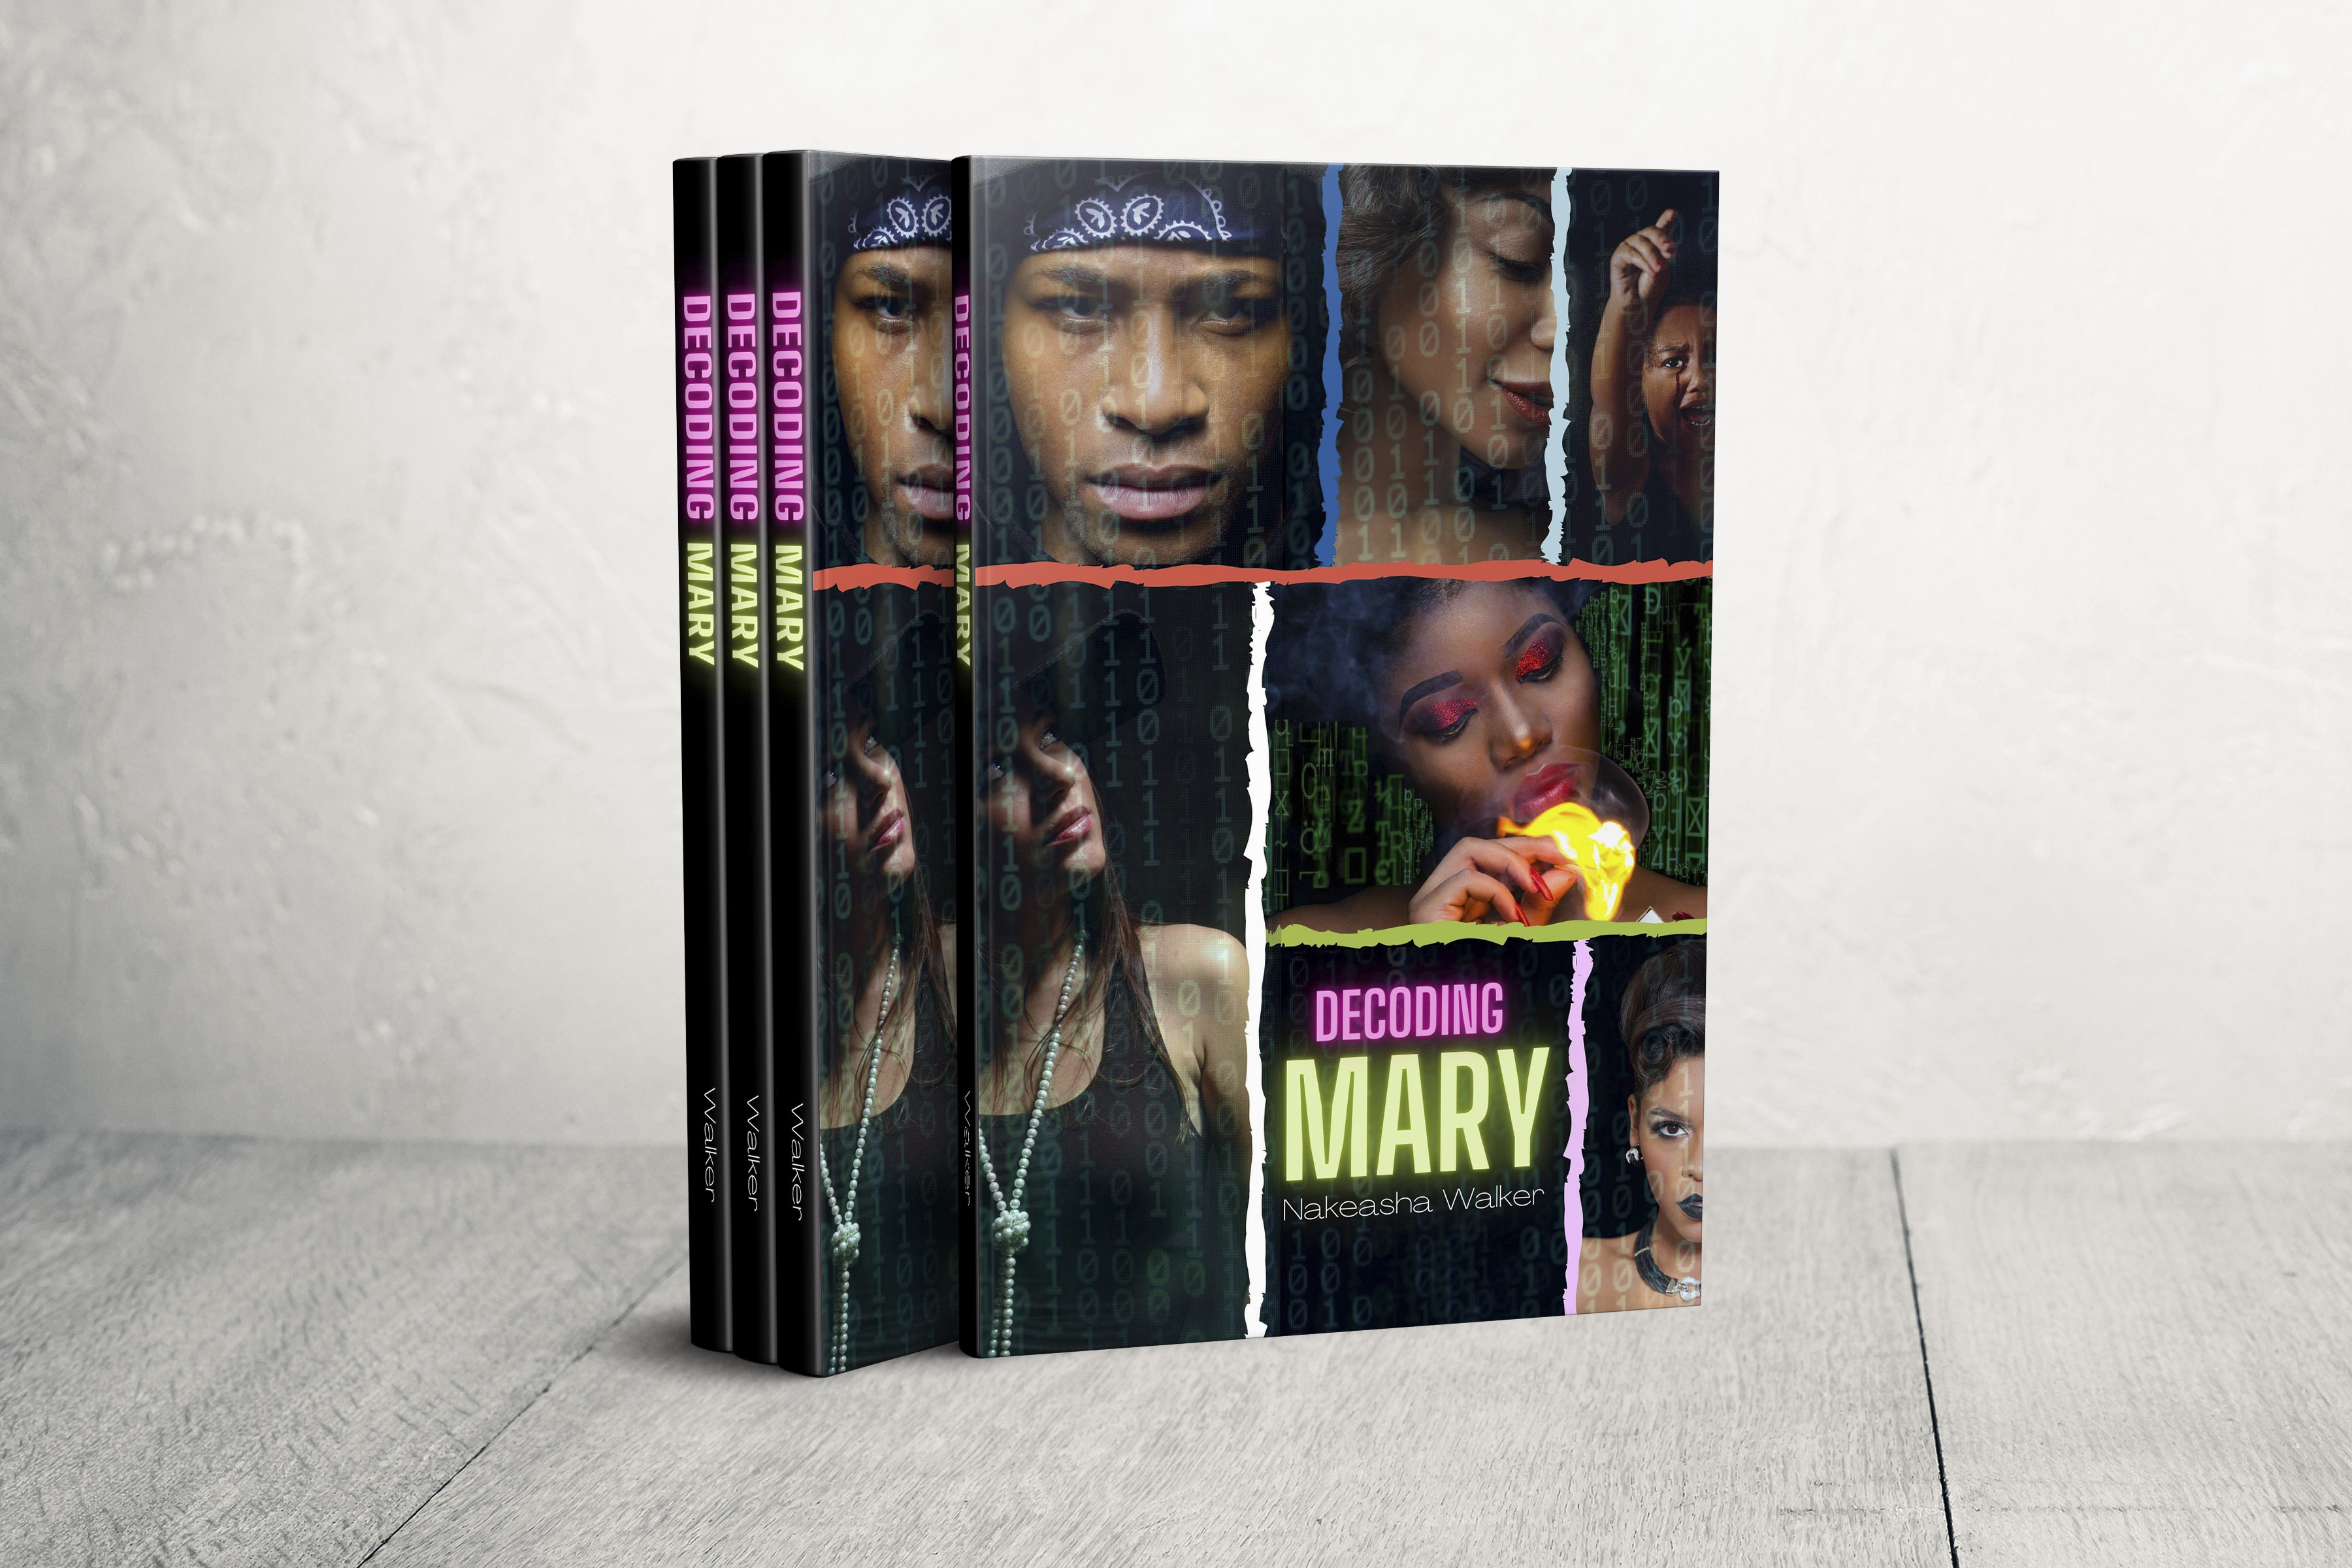 Nakeasha Walker Chronicles The Story of A Mental Health Patient In Decoding Mary